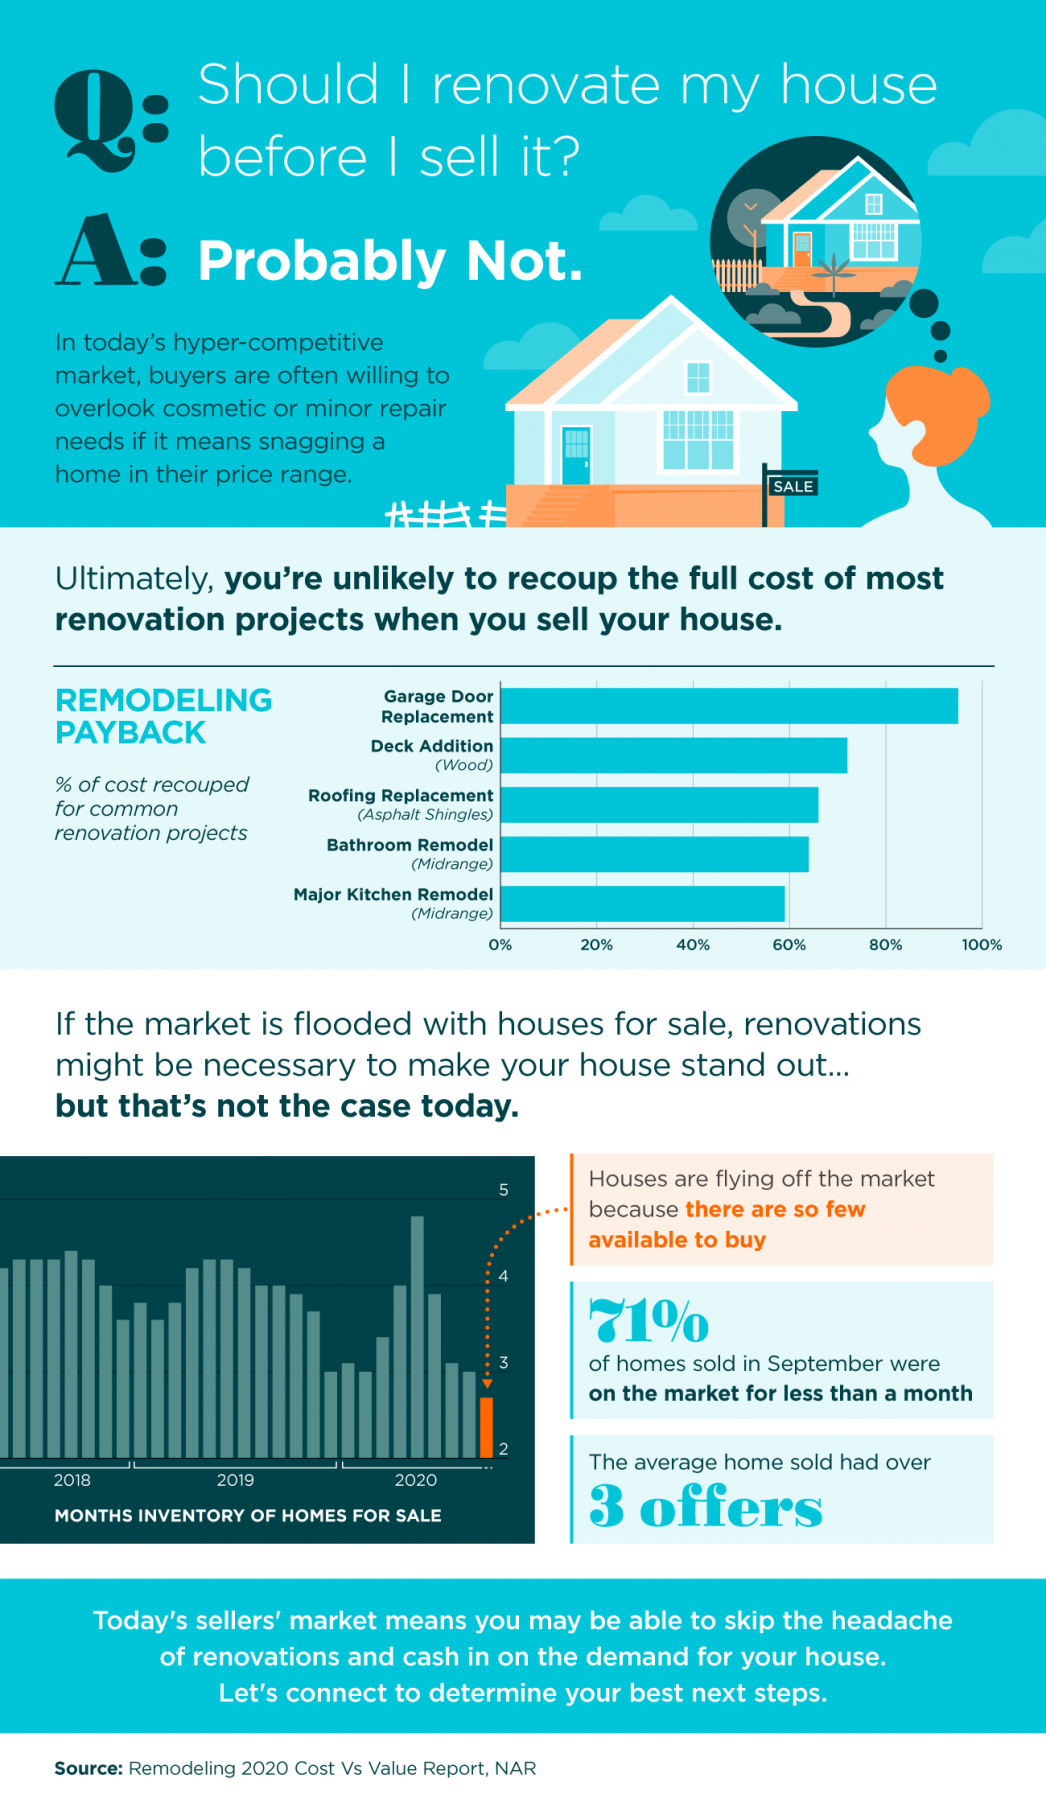 Should I Renovate My House Before I Sell It? [INFOGRAPHIC] | Maine Real Estate Blog | Fontaine Family - The Real Estate Leader | Auburn, Scarborough, Maine